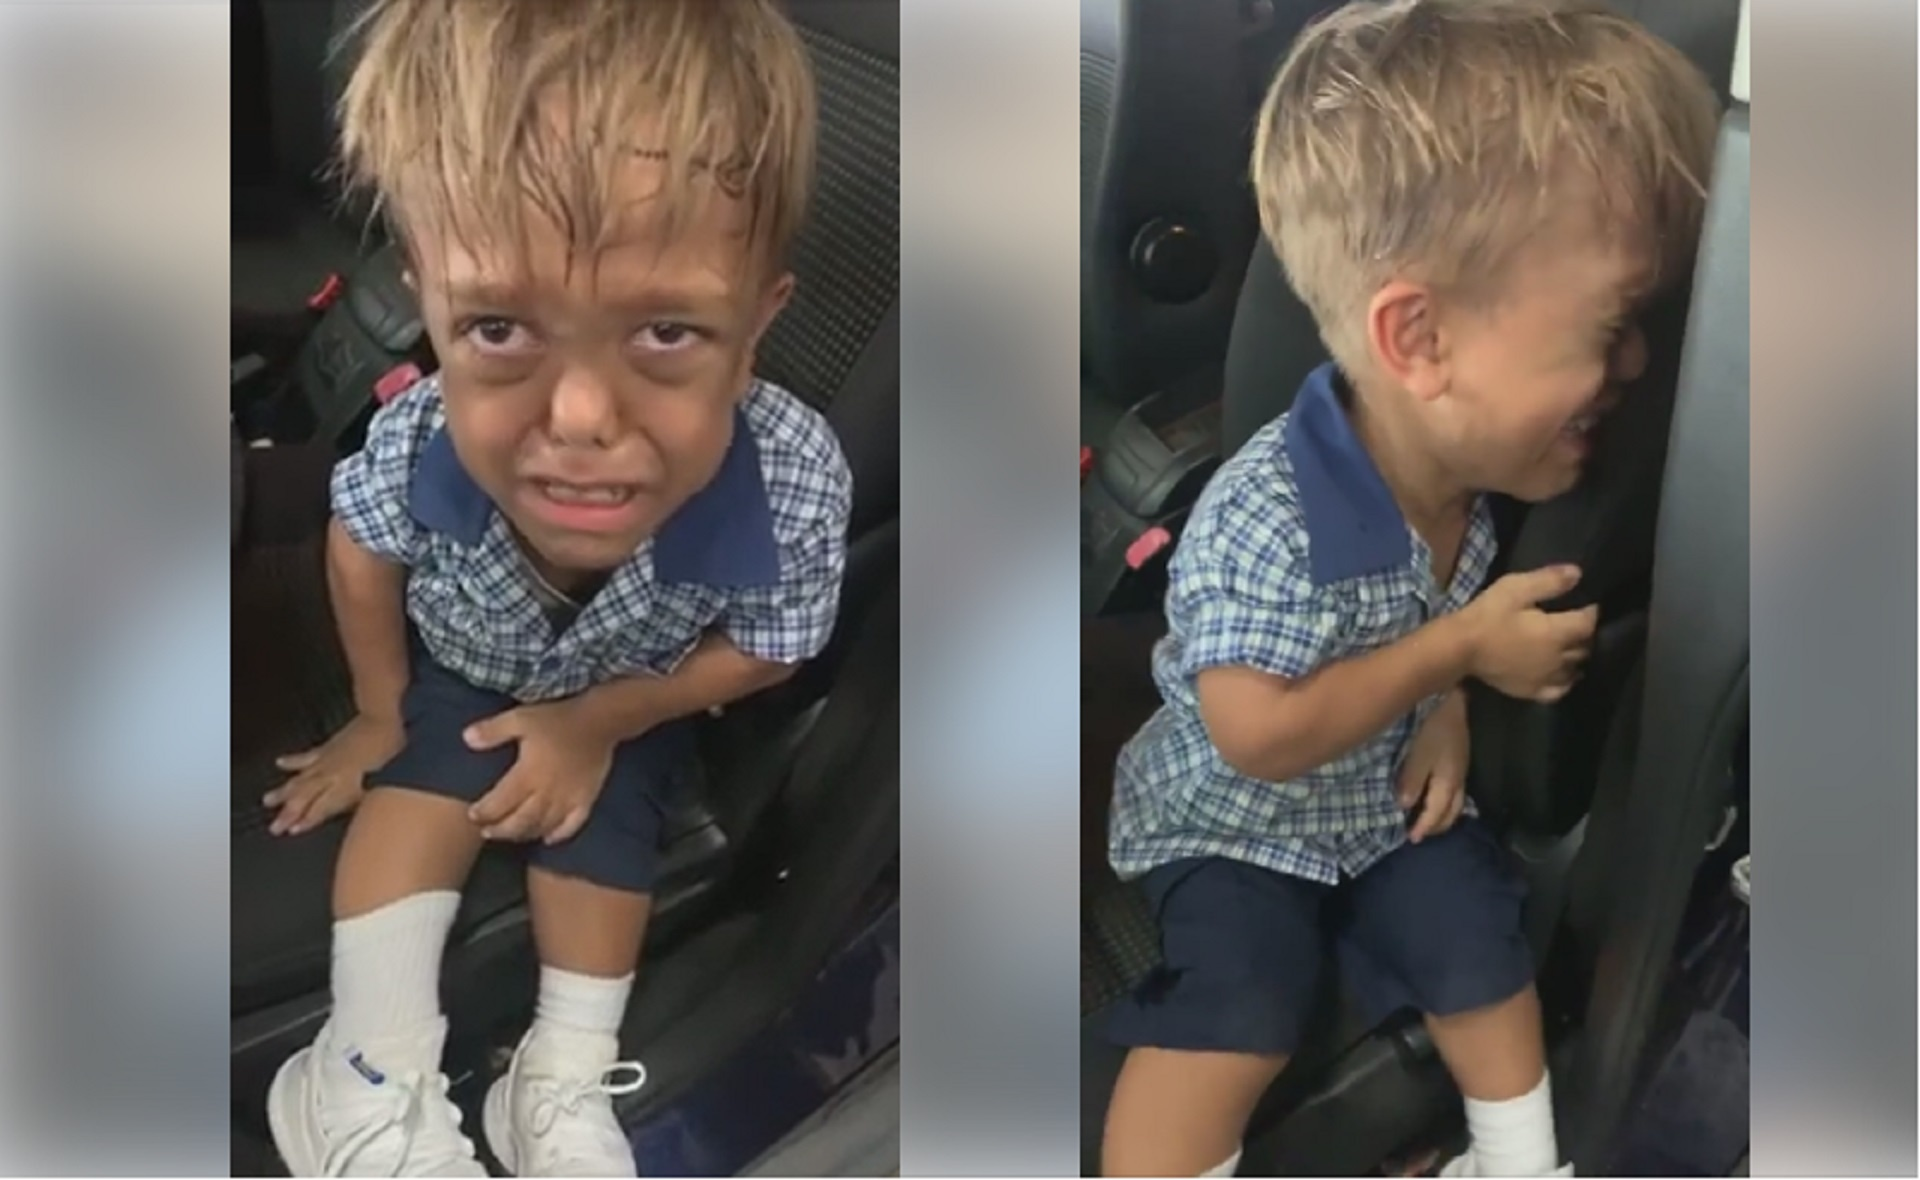 Gut-wrenching video shows the impact of bullying on 9-year-old Australian boy with dwarfism. The world is reacting.